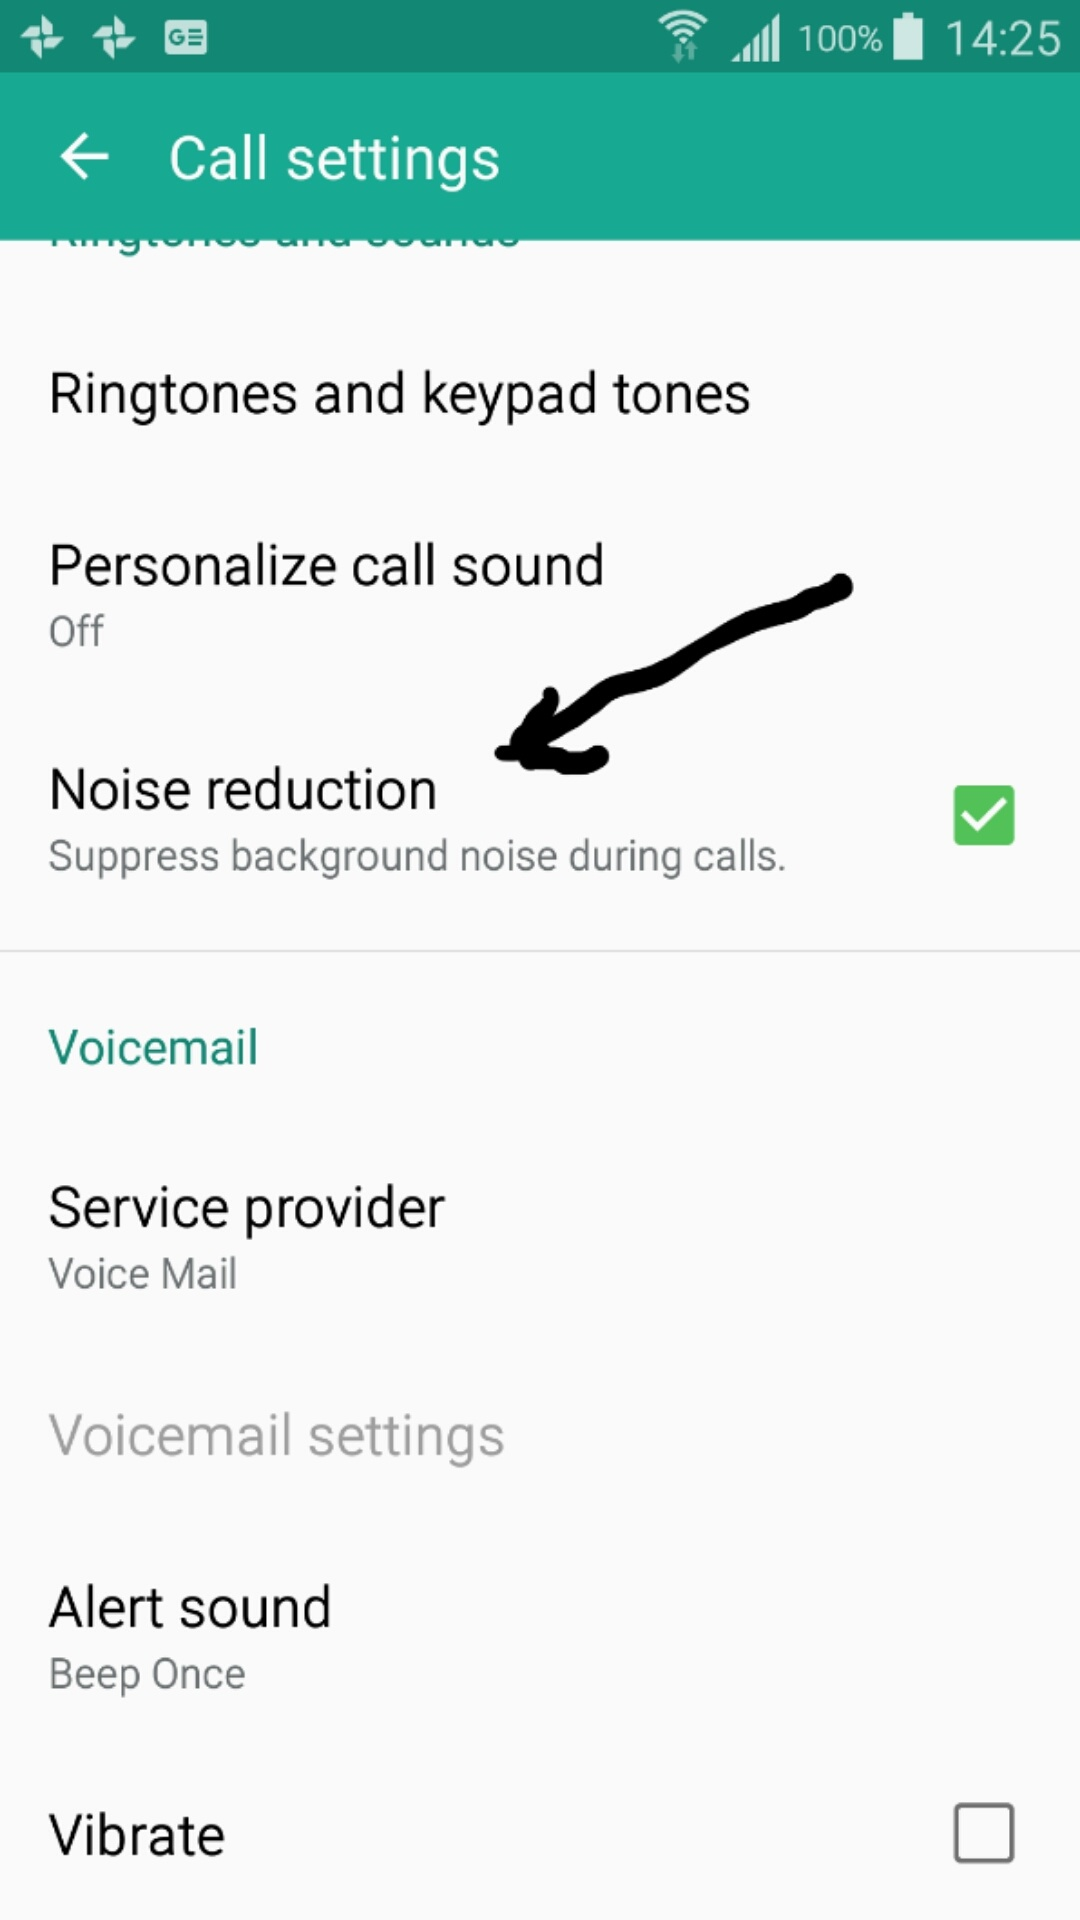 How can we supress background noise in a phone during a phone call